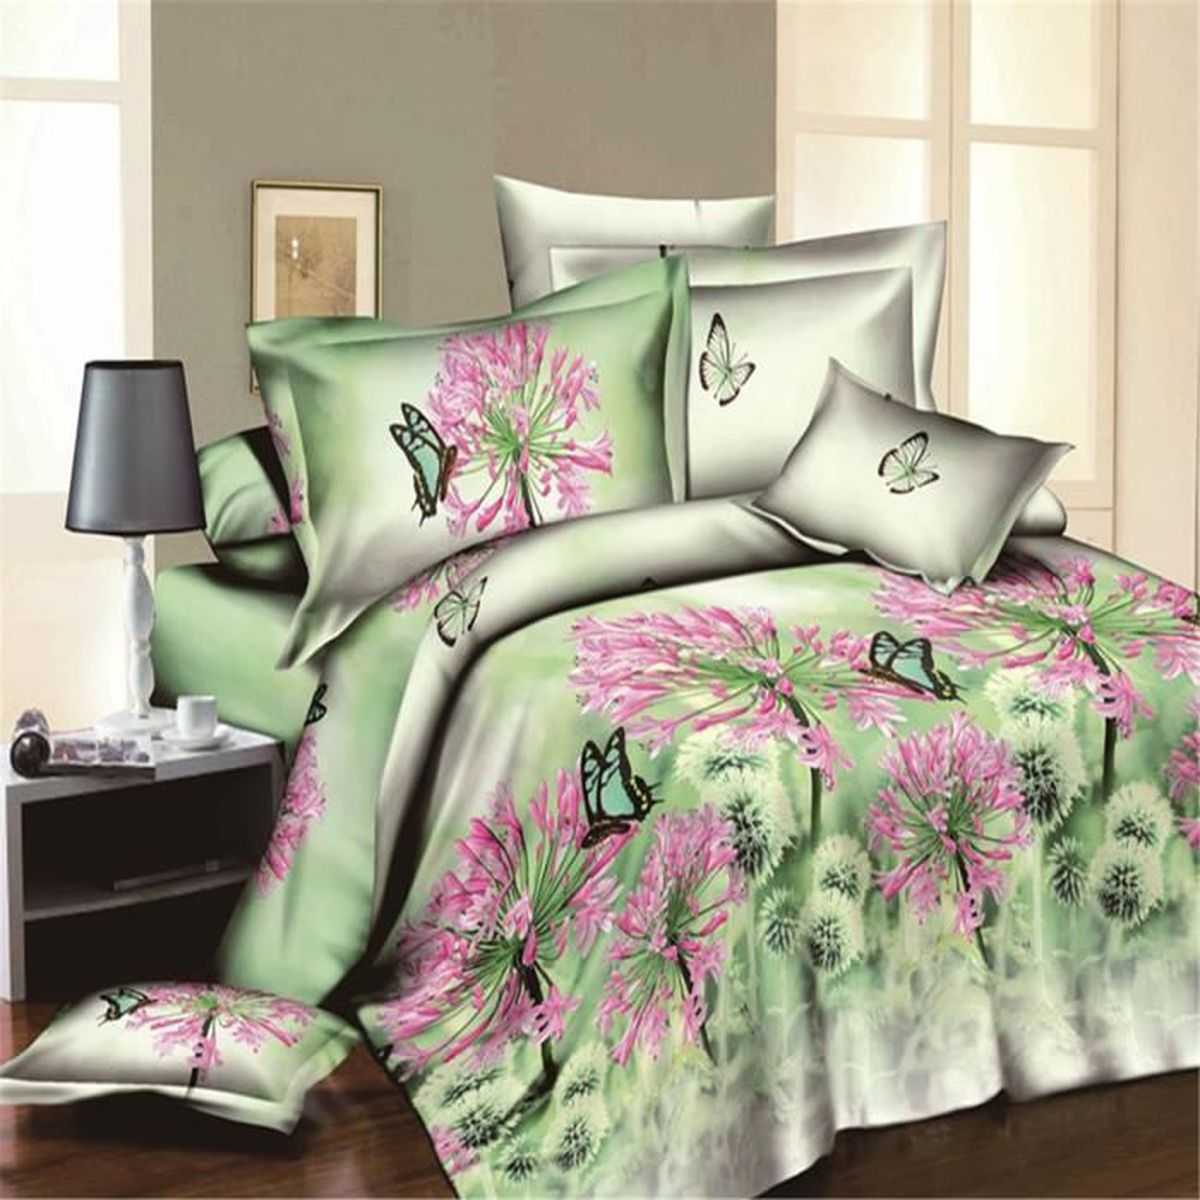 parure de couette parure de lit belle fleur rose et le papillon motif 1 housse de couette. Black Bedroom Furniture Sets. Home Design Ideas